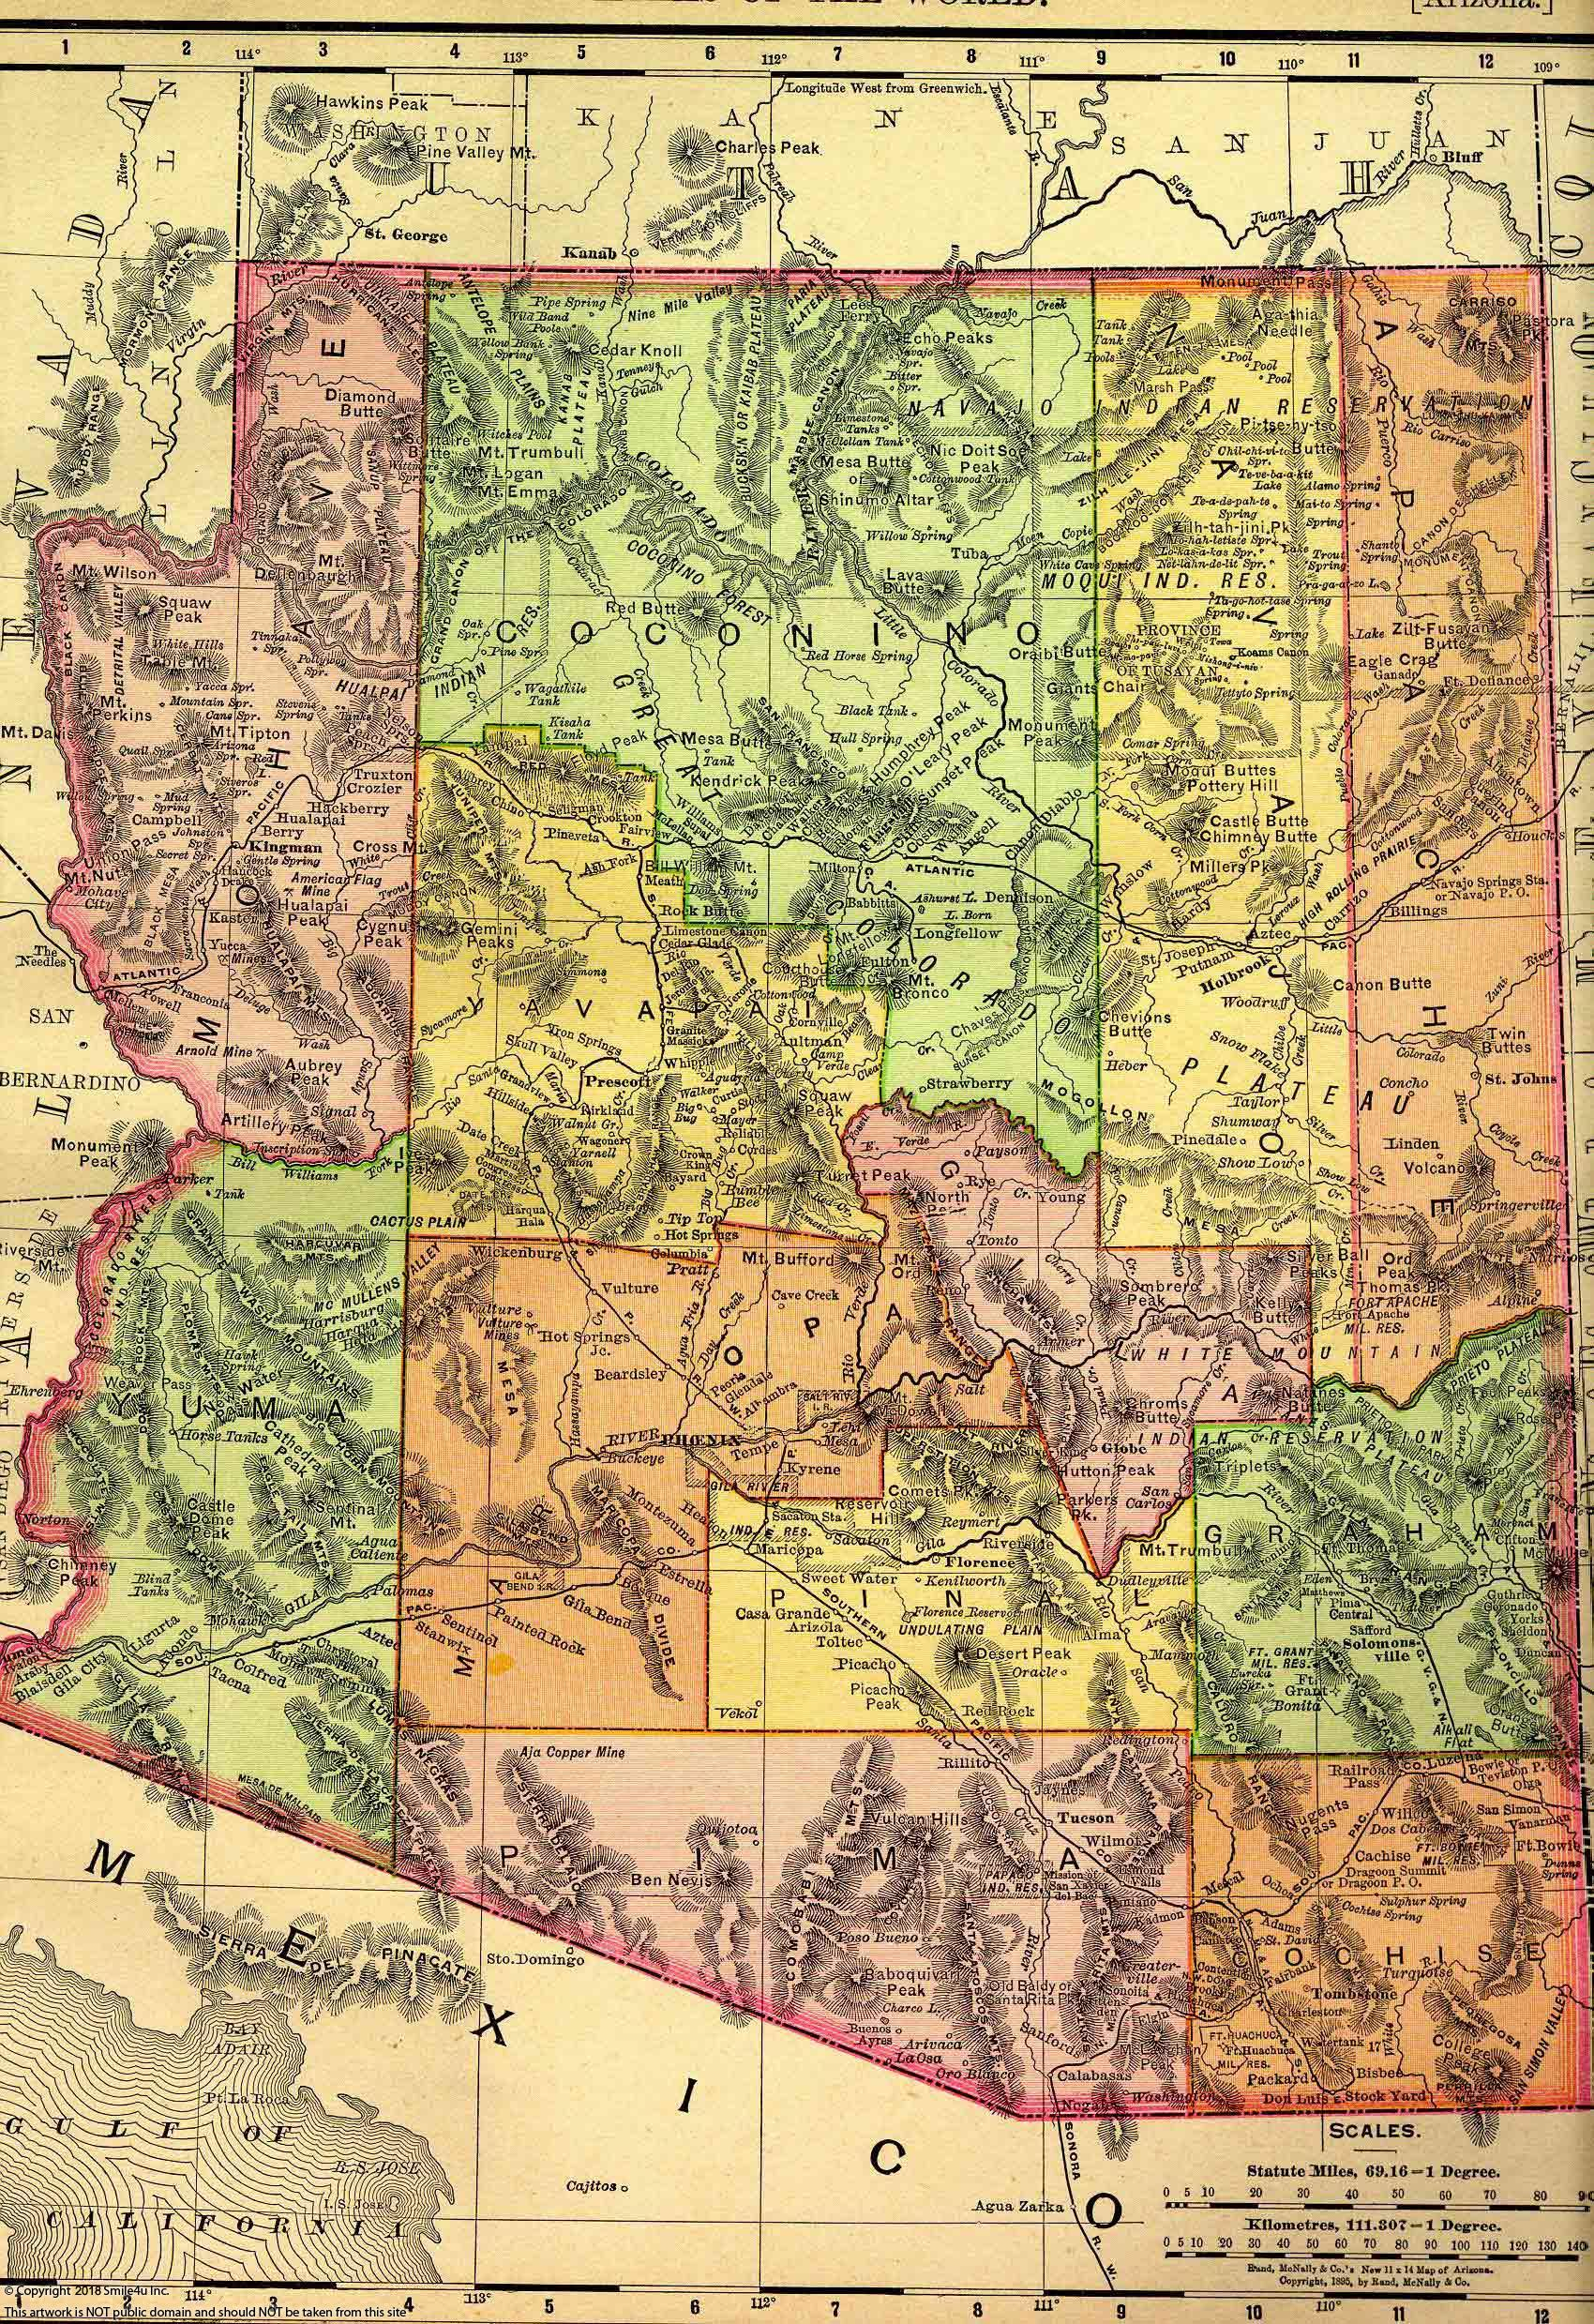 155238_watermarked_1895 map.jpg